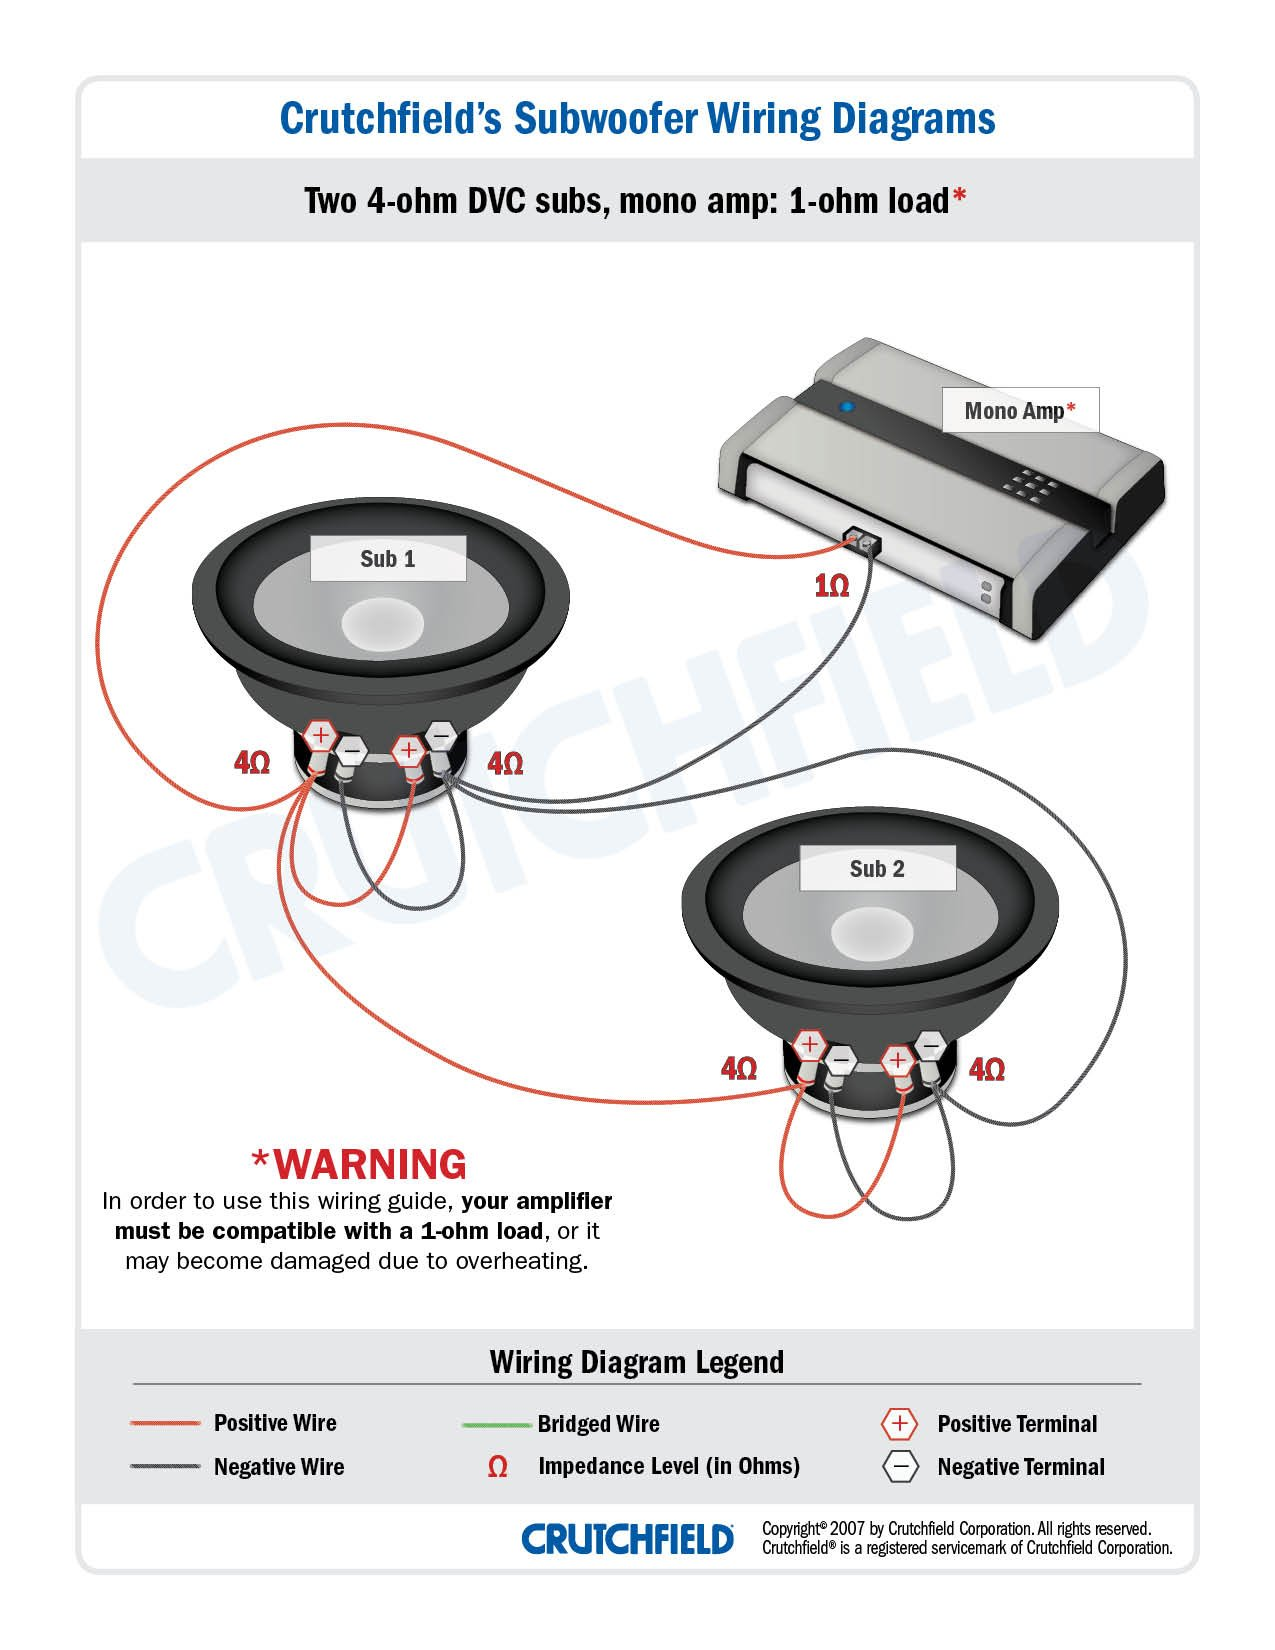 Wiring Subwoofers What's All This About Ohms? 2 Ohm To 1 Ohm 4 Ohm To 2 Ohm  Wiring